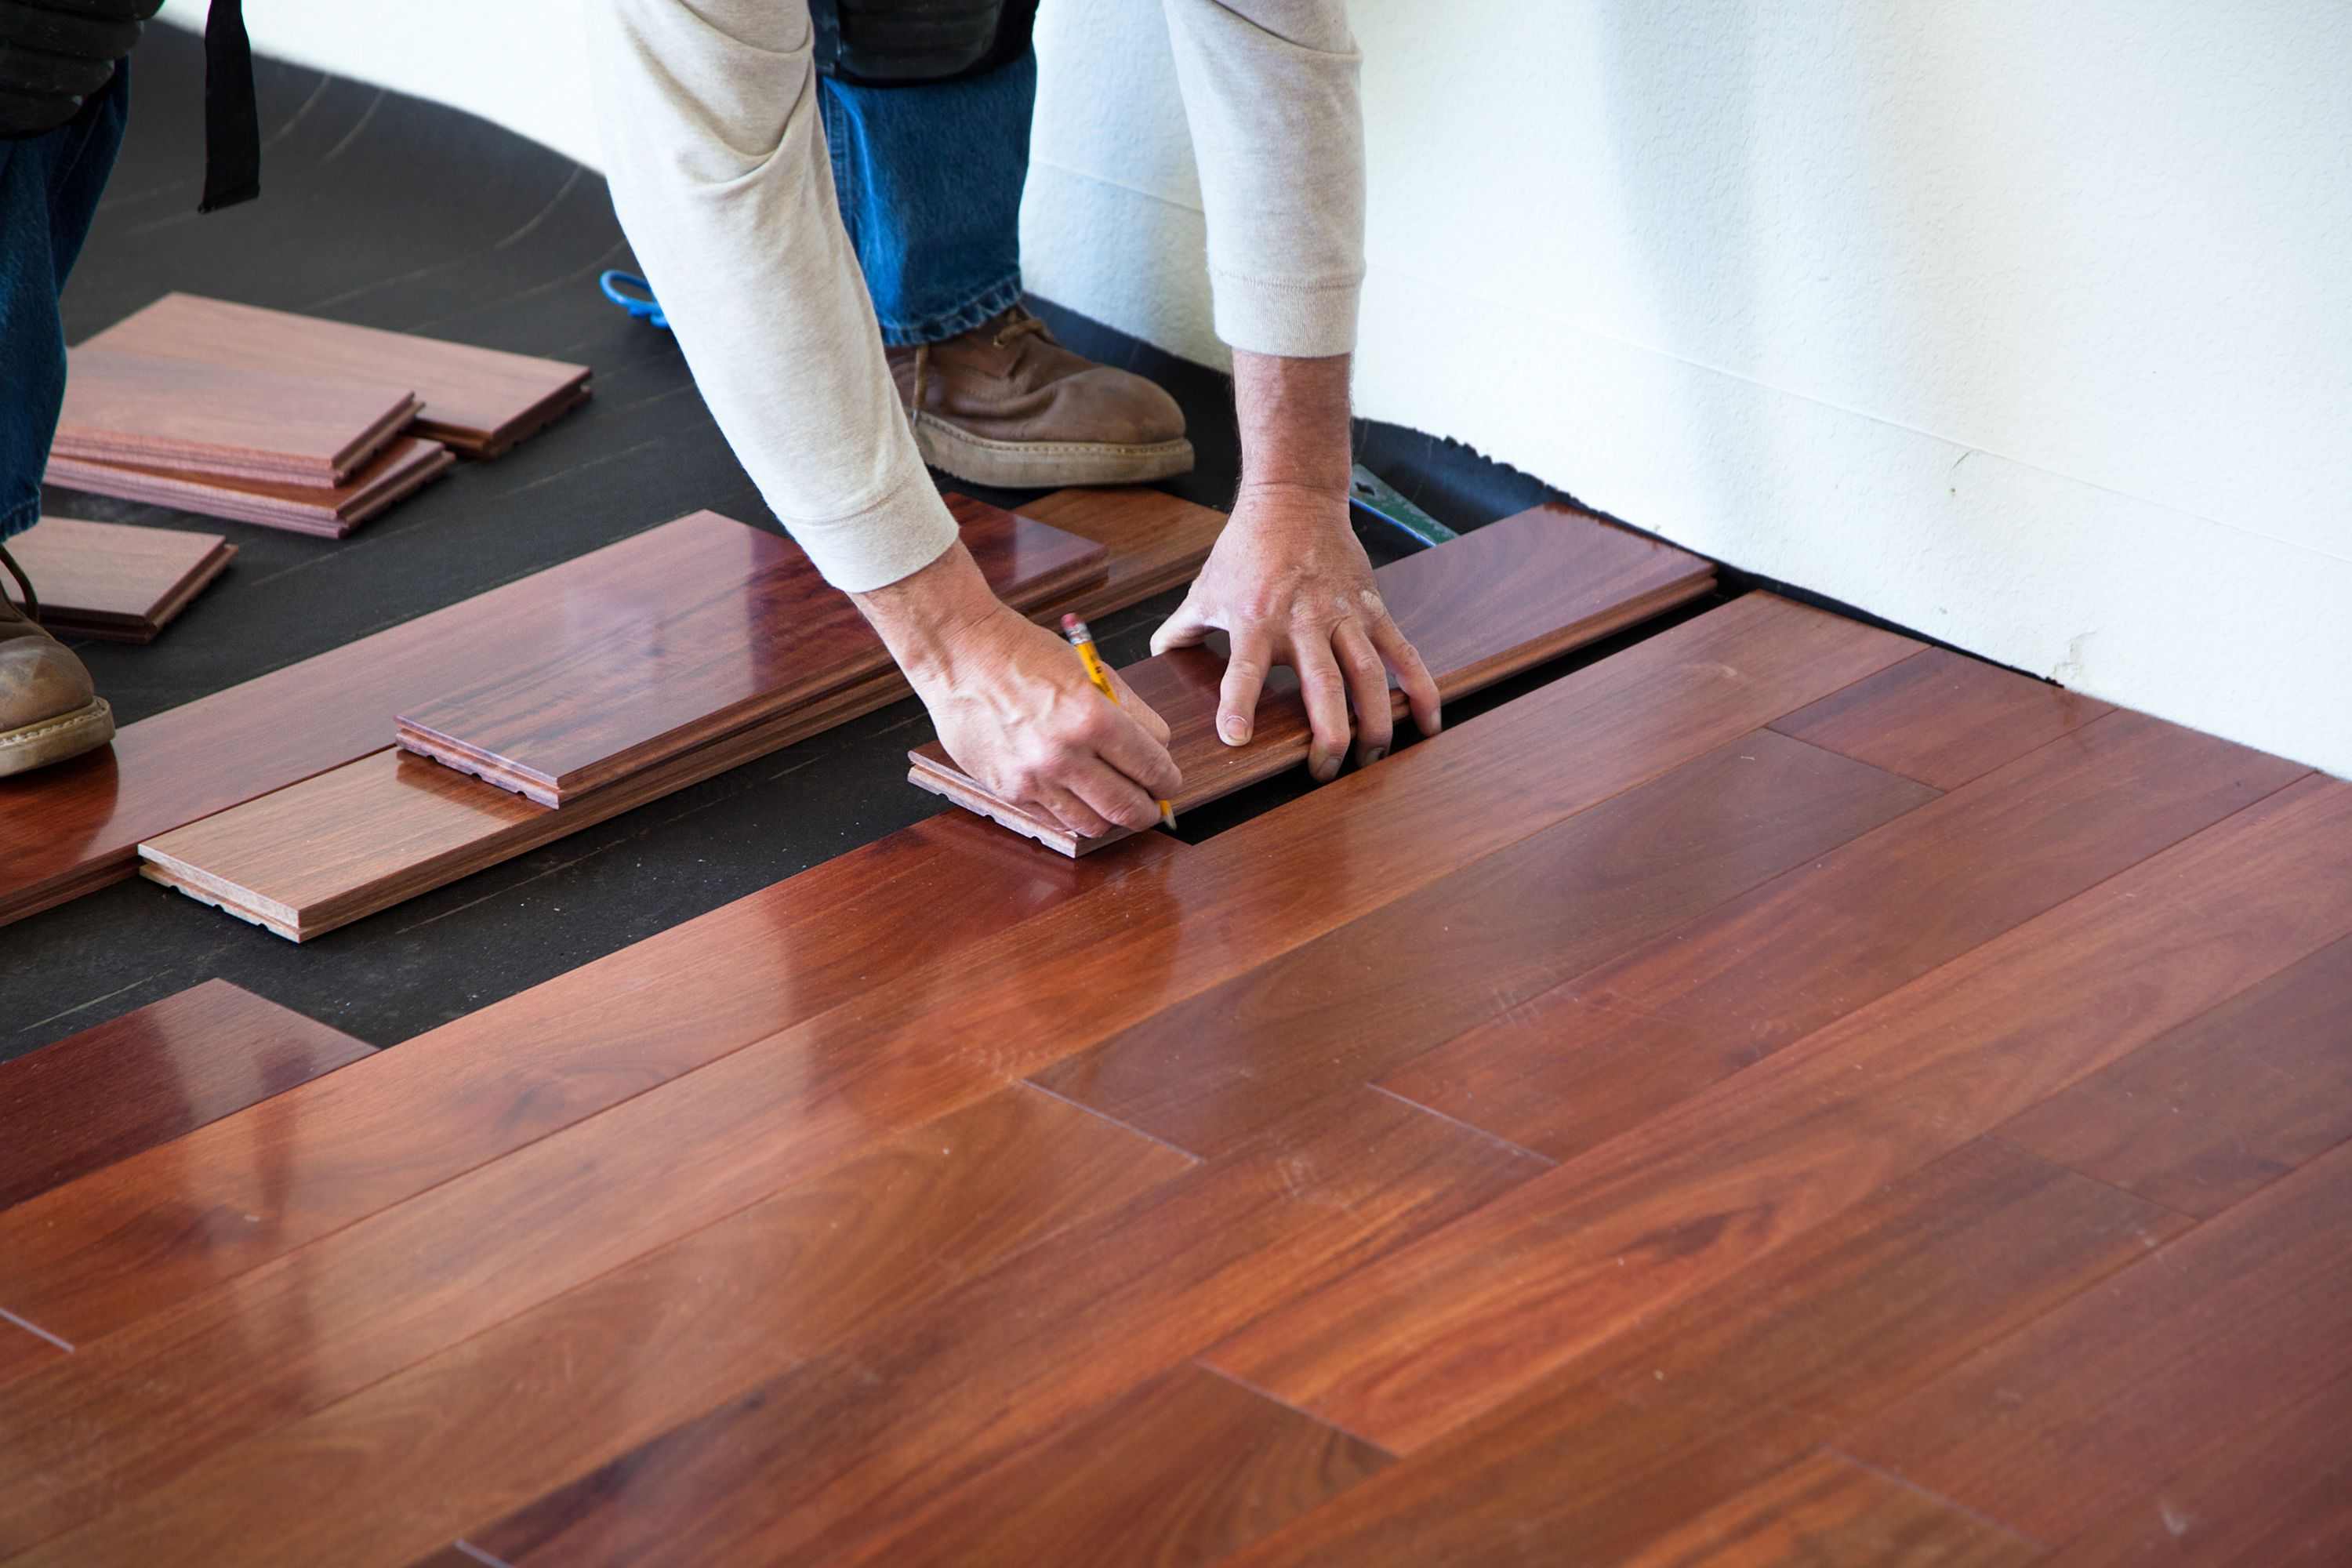 Plywood vs osb for flooring which is best subflooring for wood tile and other types of flooring dailygadgetfo Images